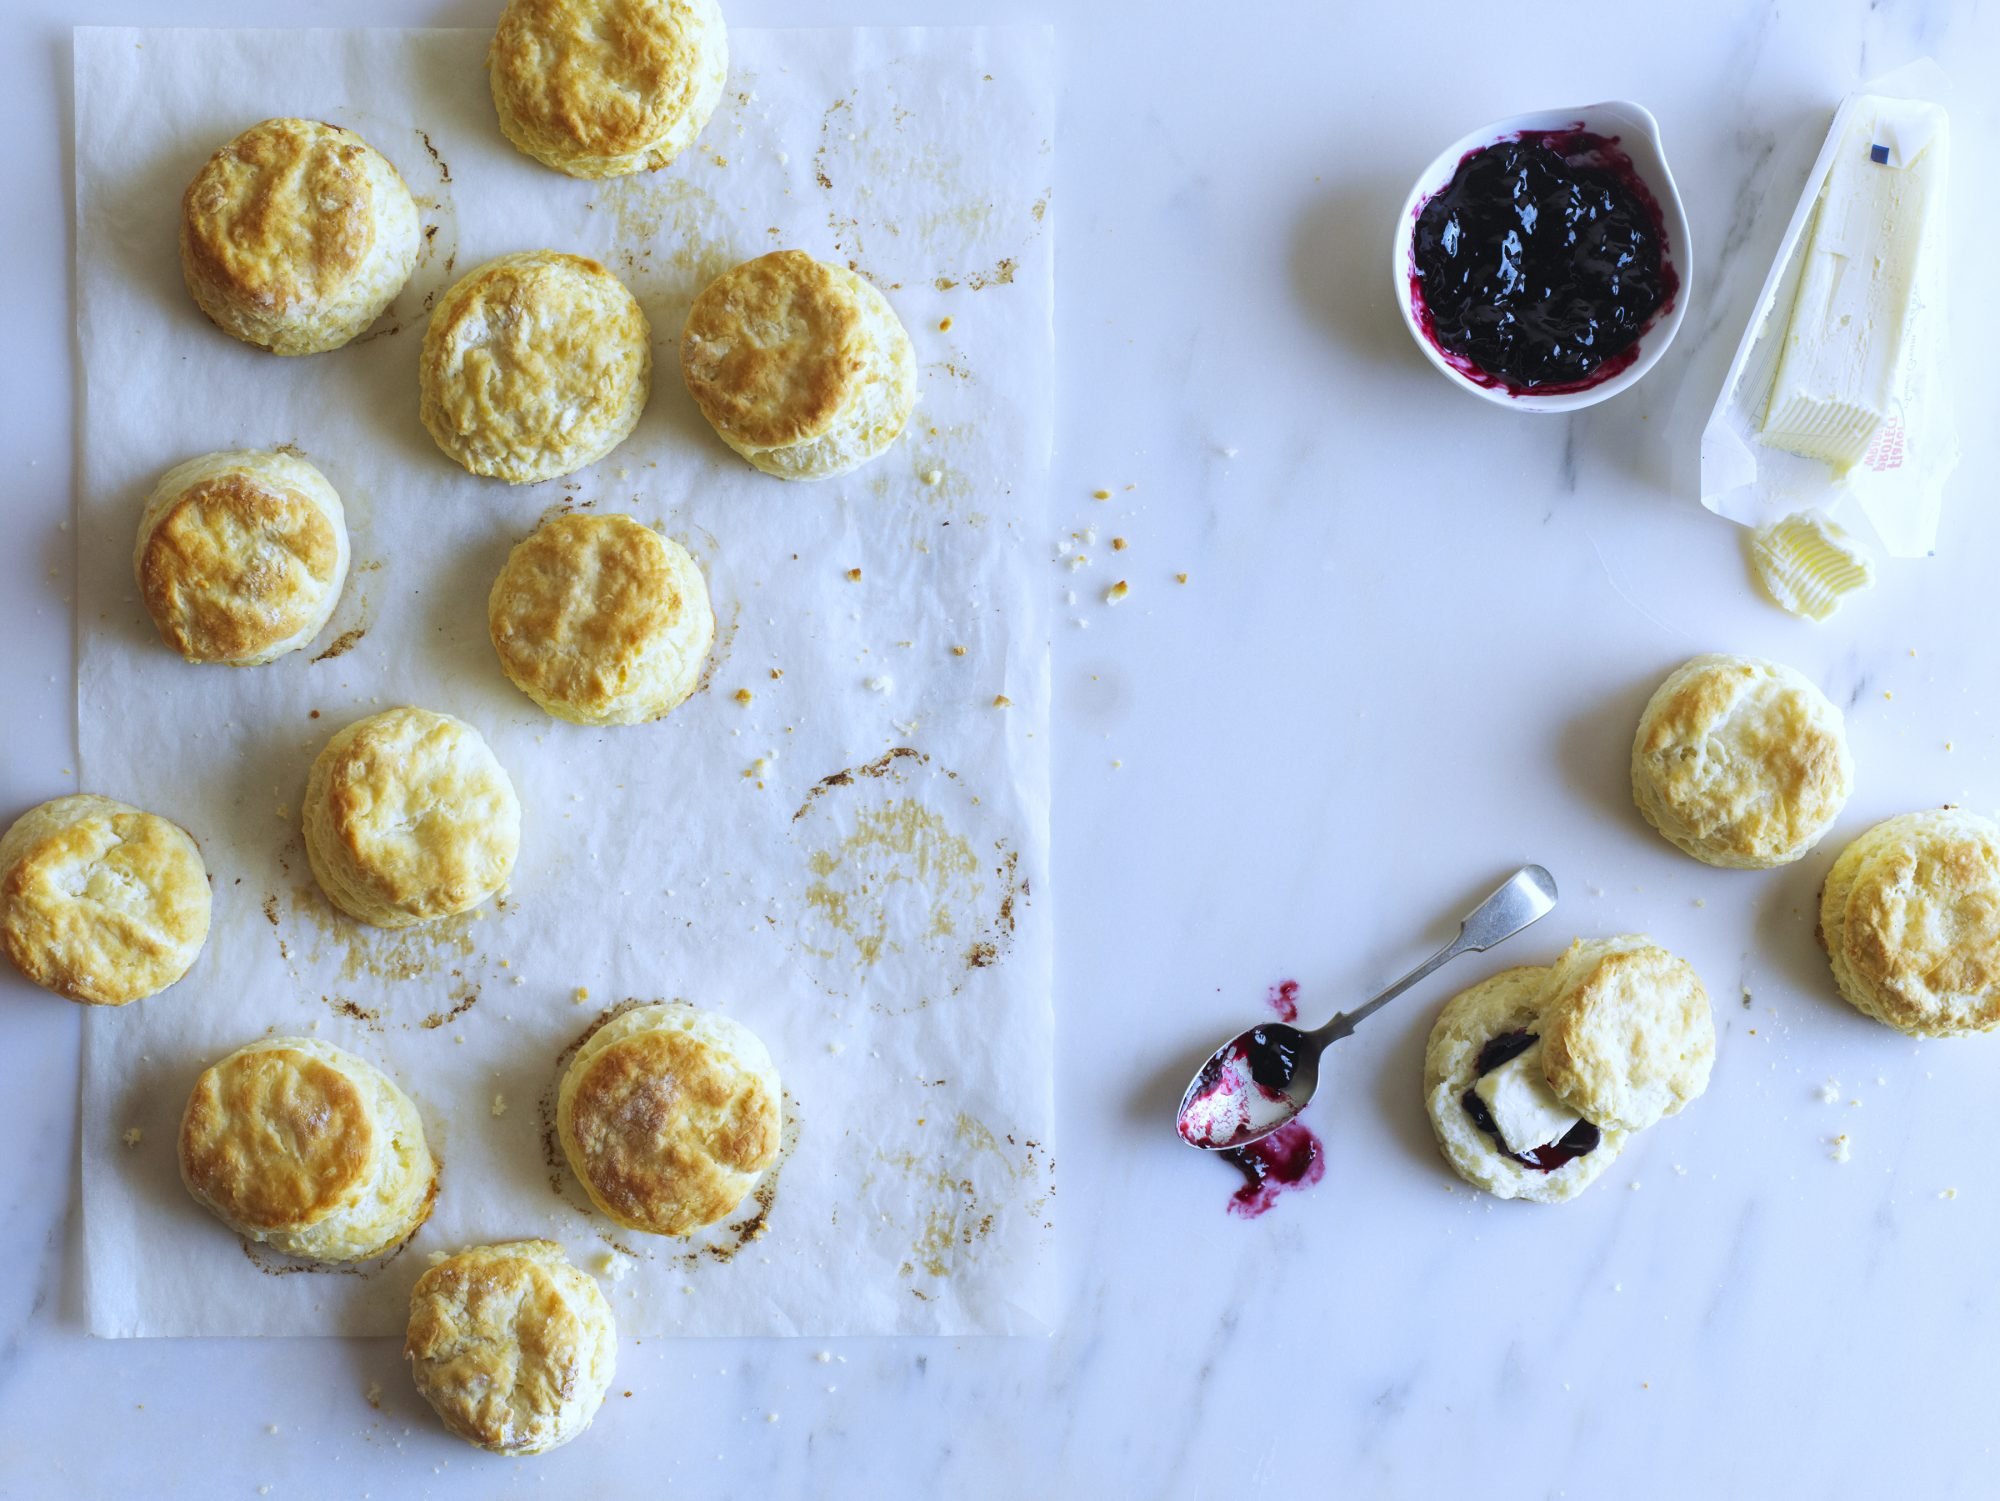 getty-biscuit-image